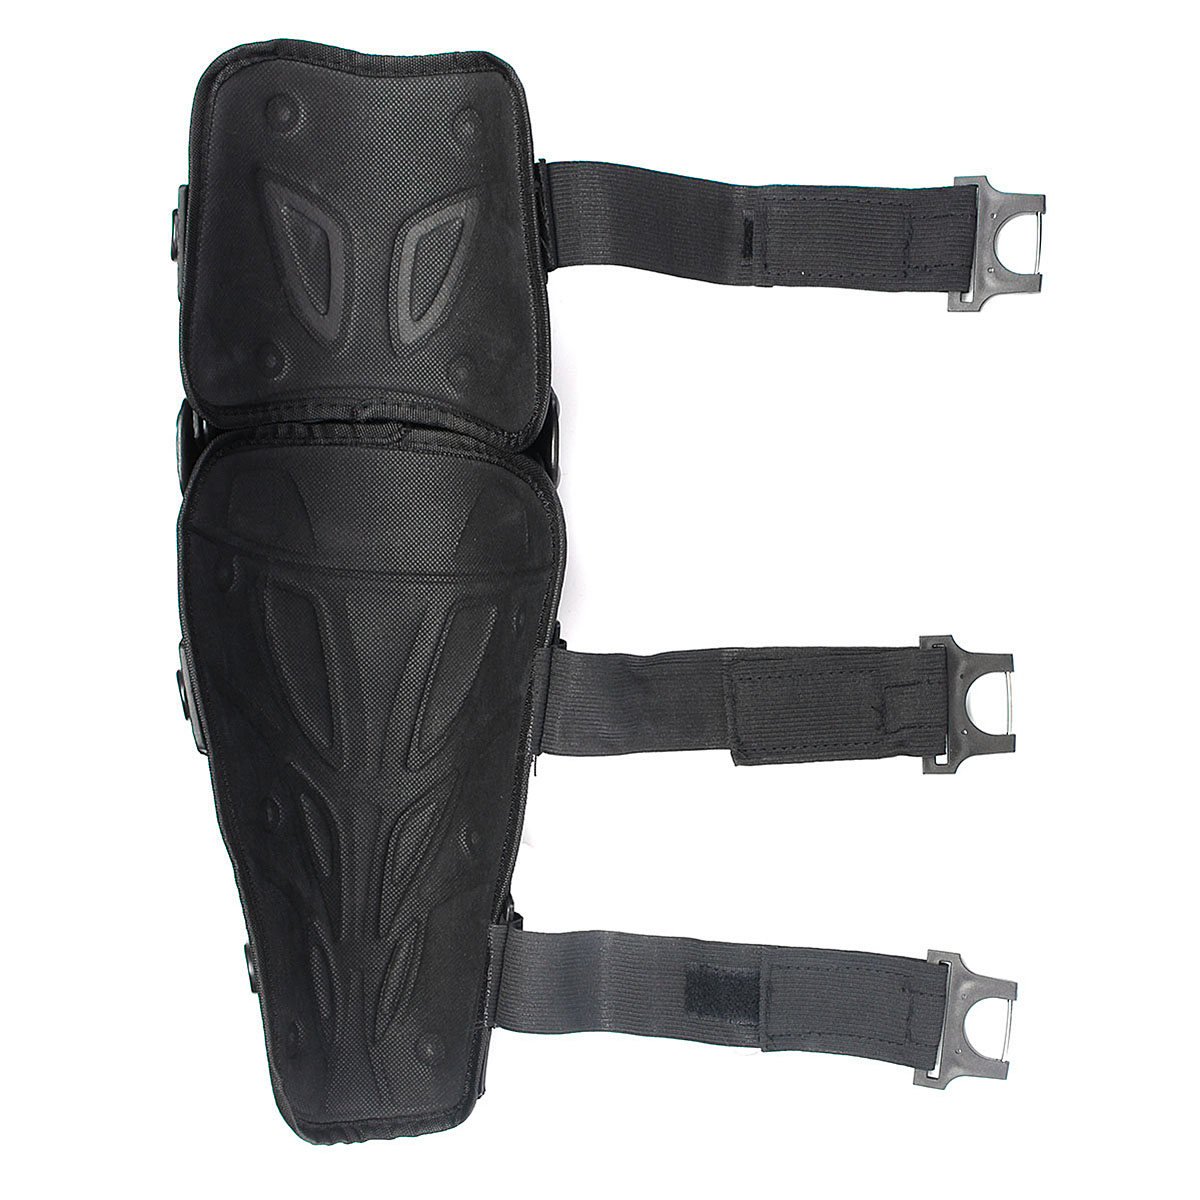 Motorcycle Safety Knee Pad Skateboard Motocross Racing Skiing Protective Gear